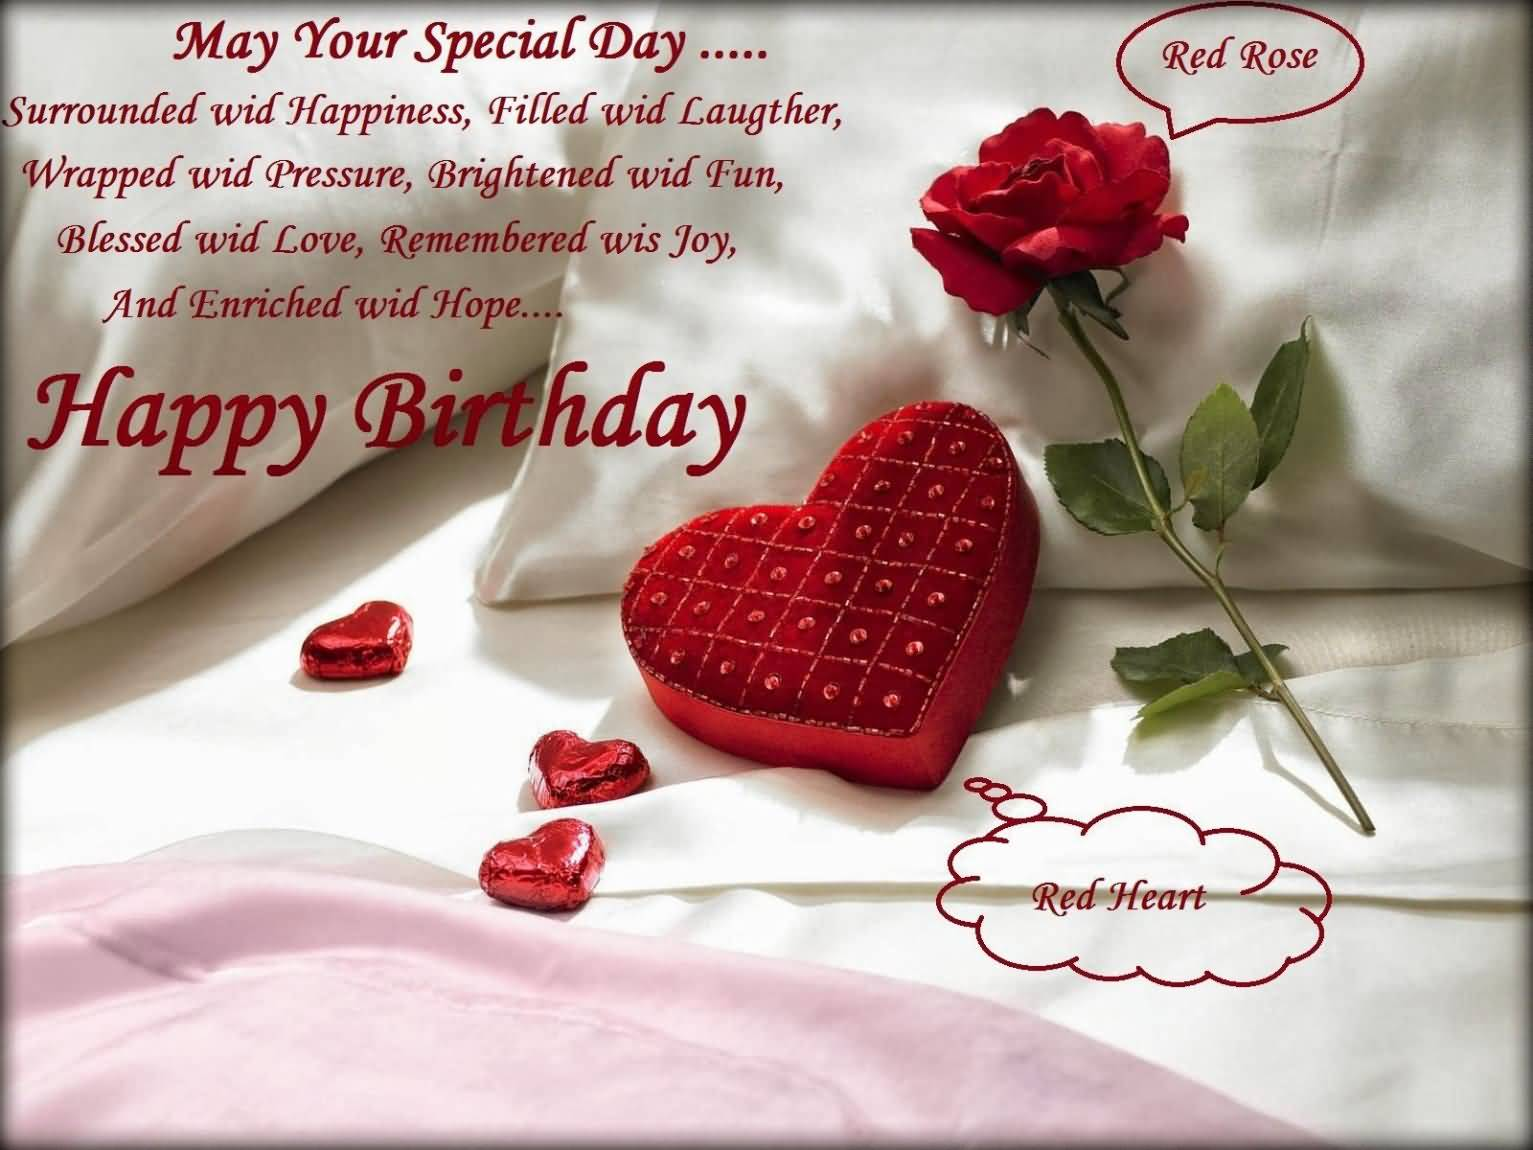 Happy Birthday Wishes For Husband Images Free Download May Your Special Day Quotesbae